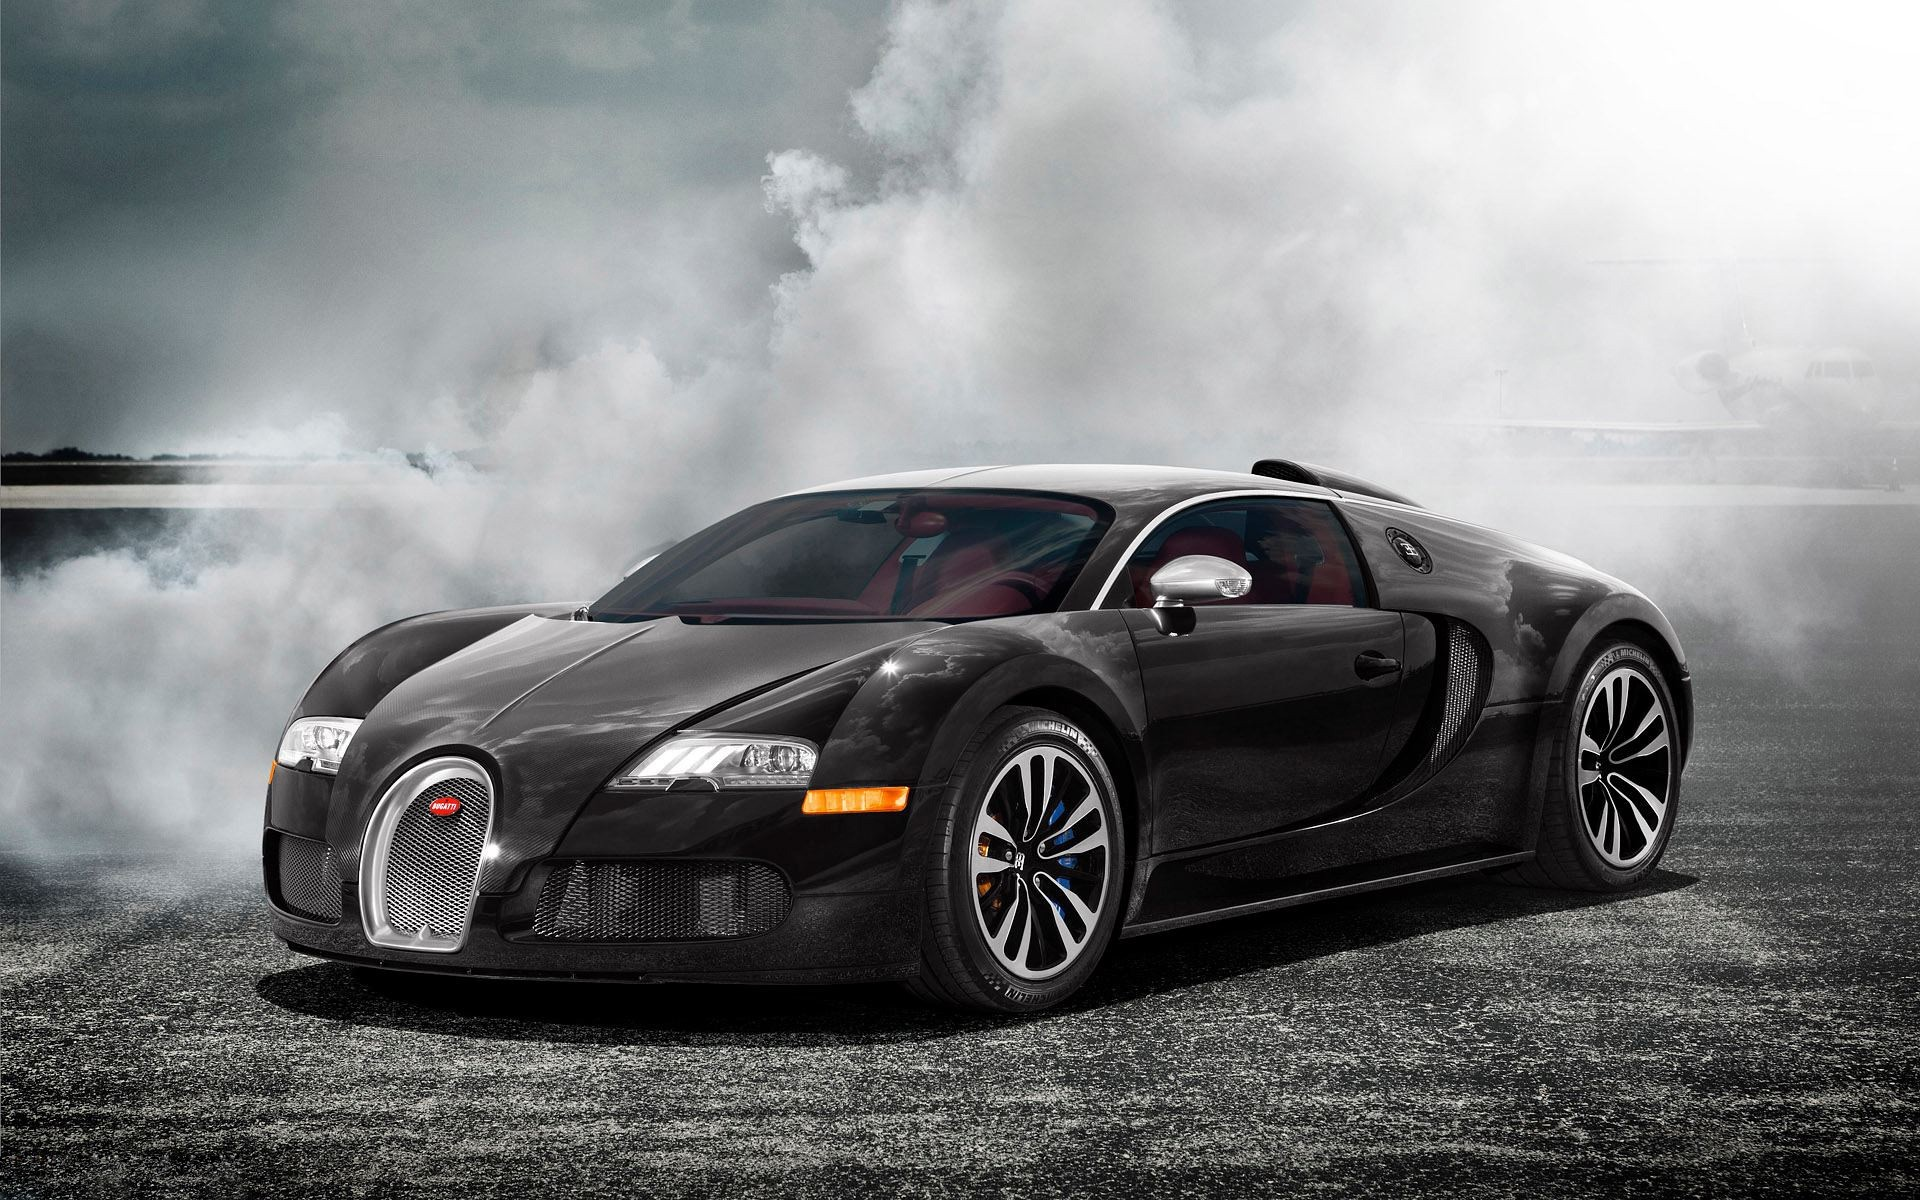 The Bugatti Veyron, courtesy of hdcarwallpapers.com